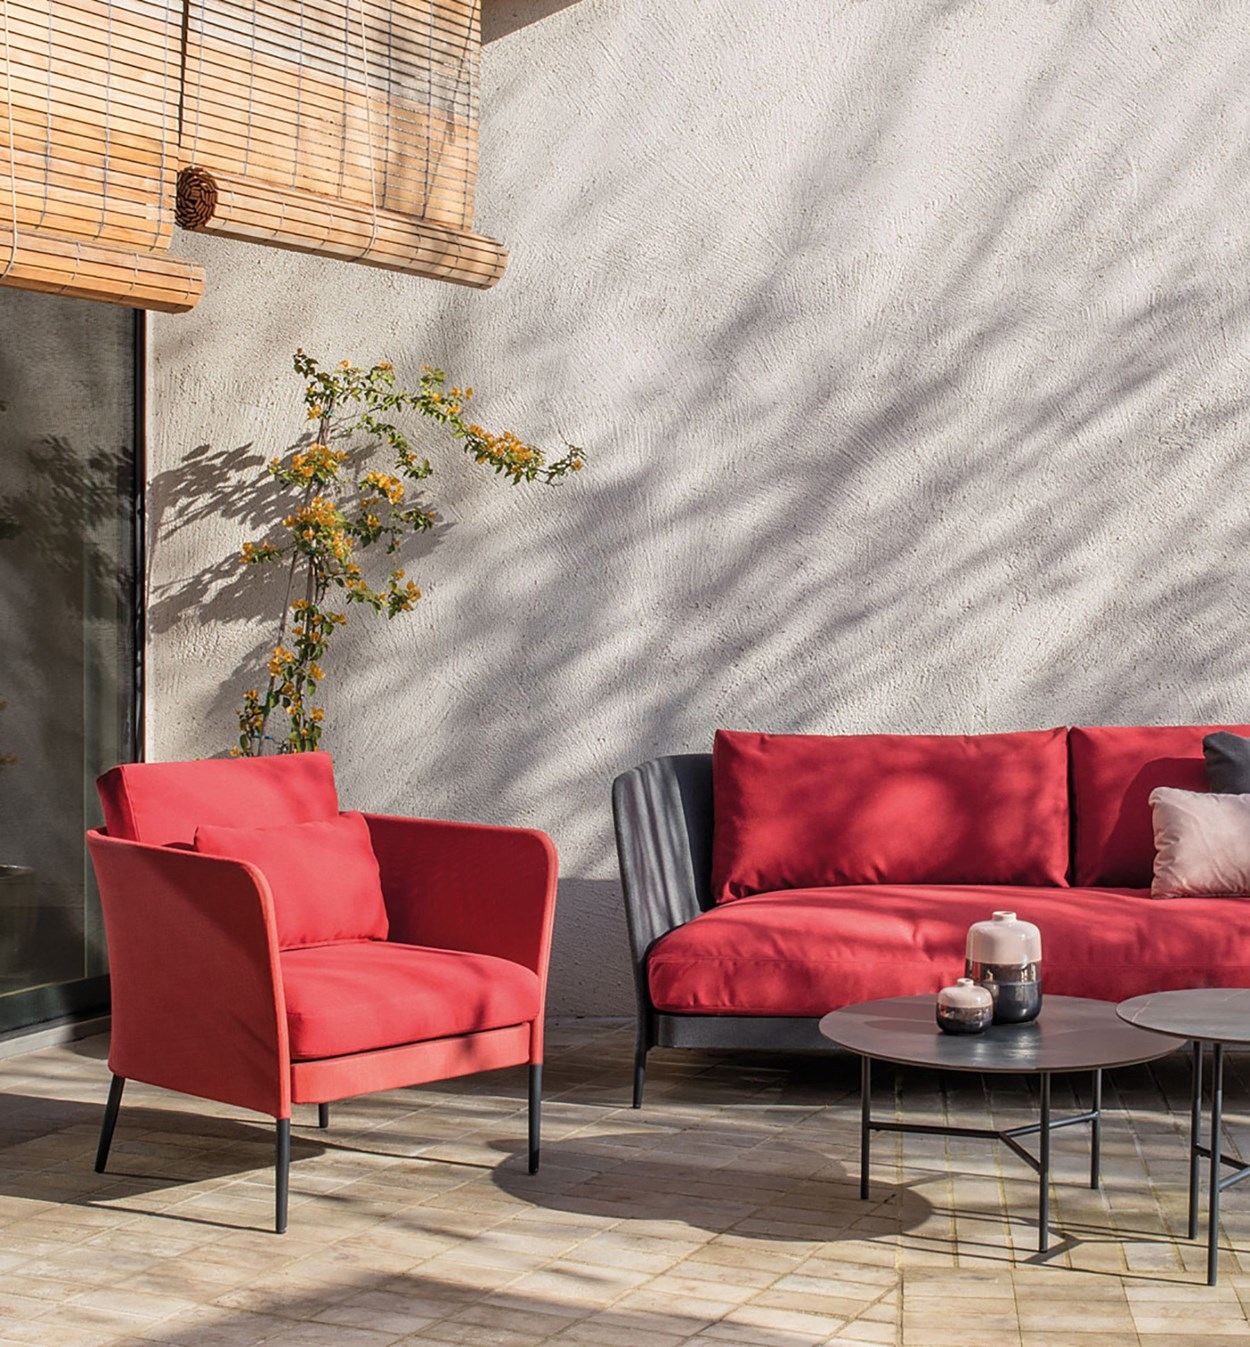 Expormim-furniture-outdoor-kabu-armchair-02-2.jpg